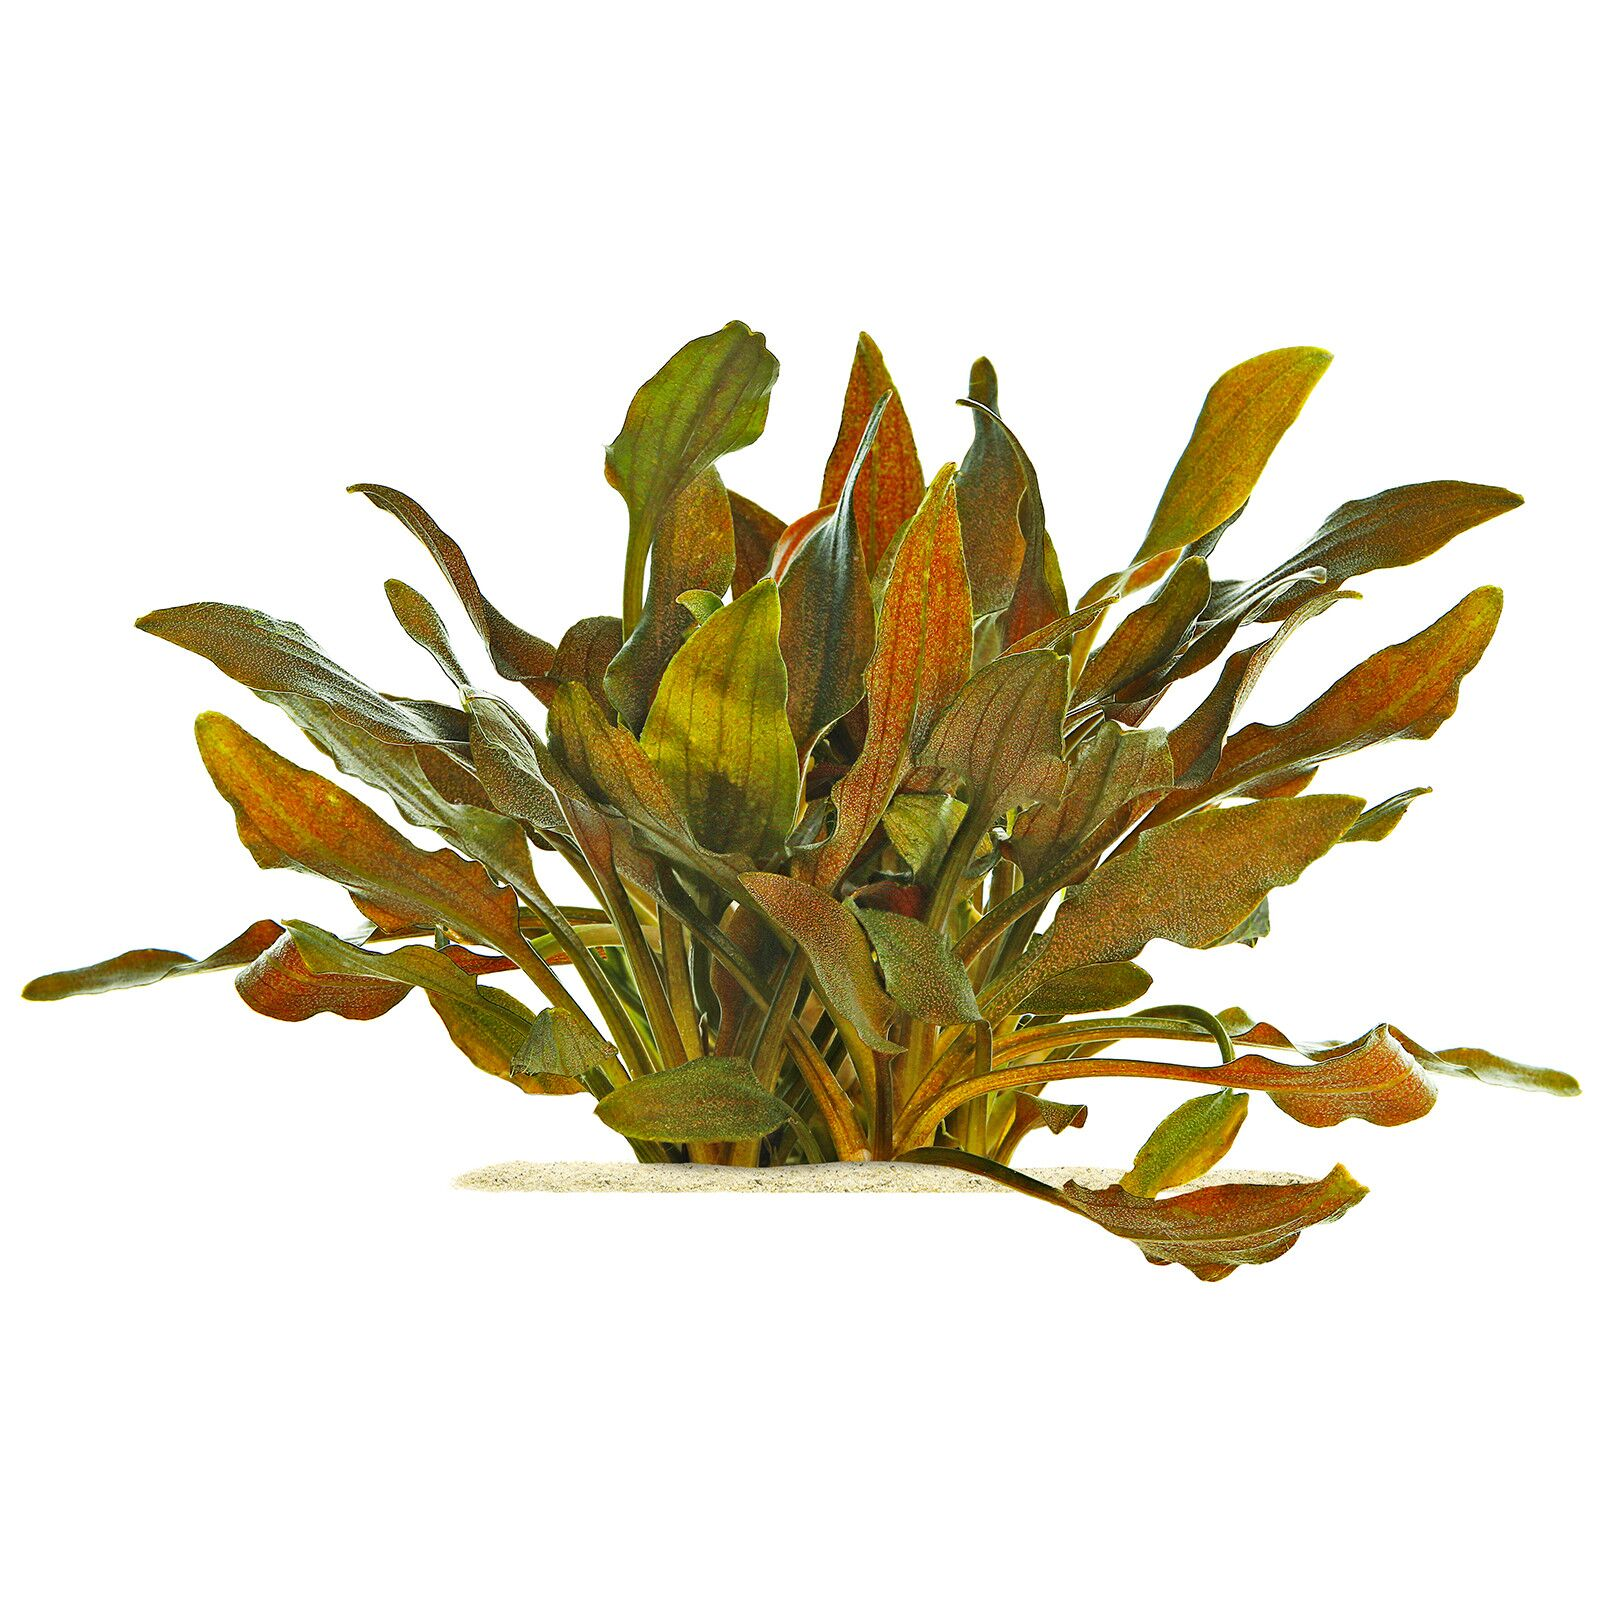 Cryptocoryne walkeri 'Hobbit'